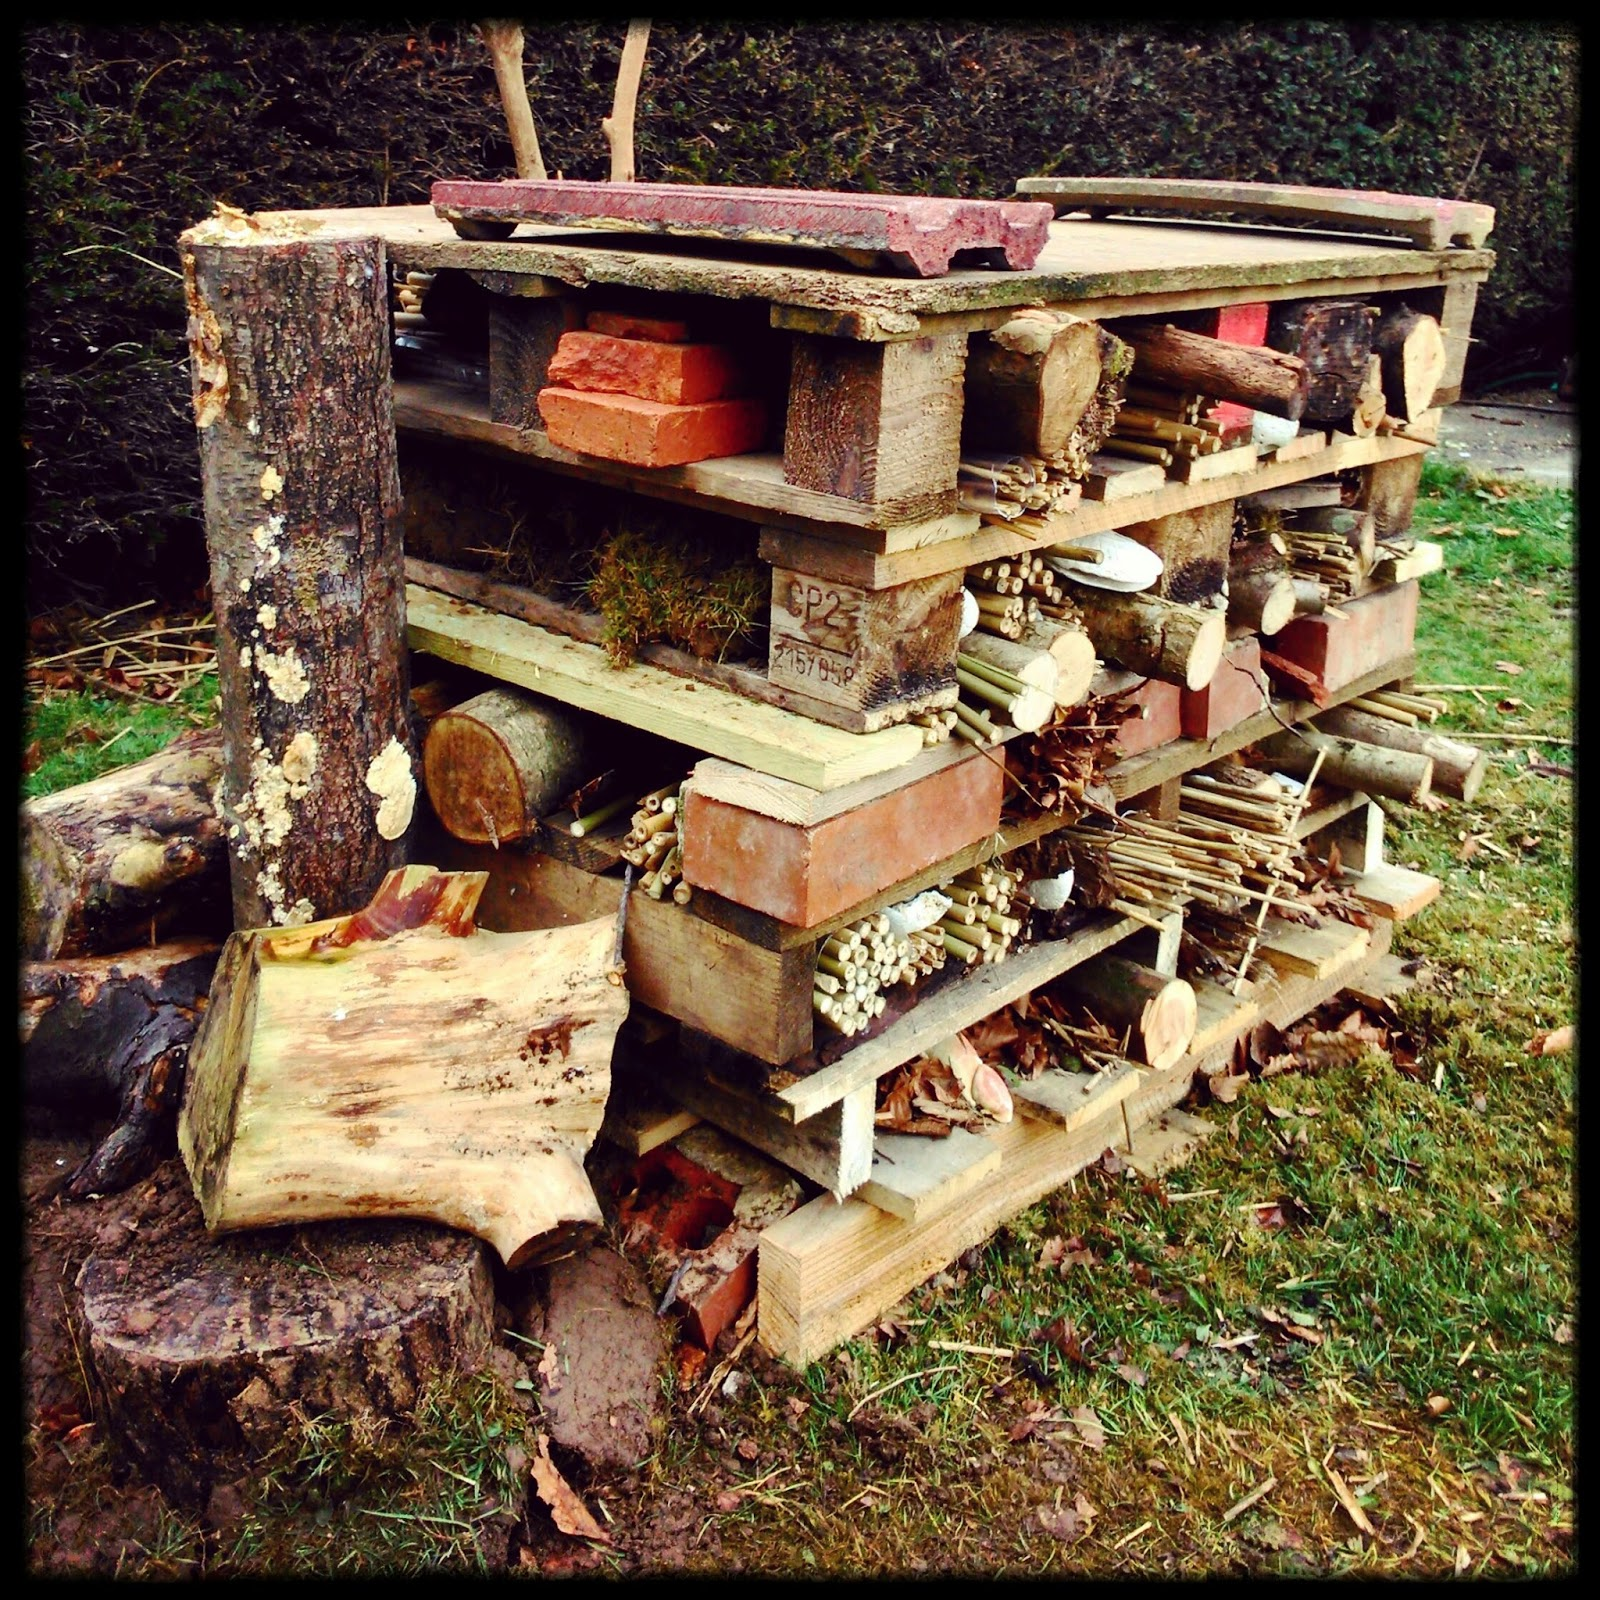 Beach House Park Bug Hotel - ready for guests